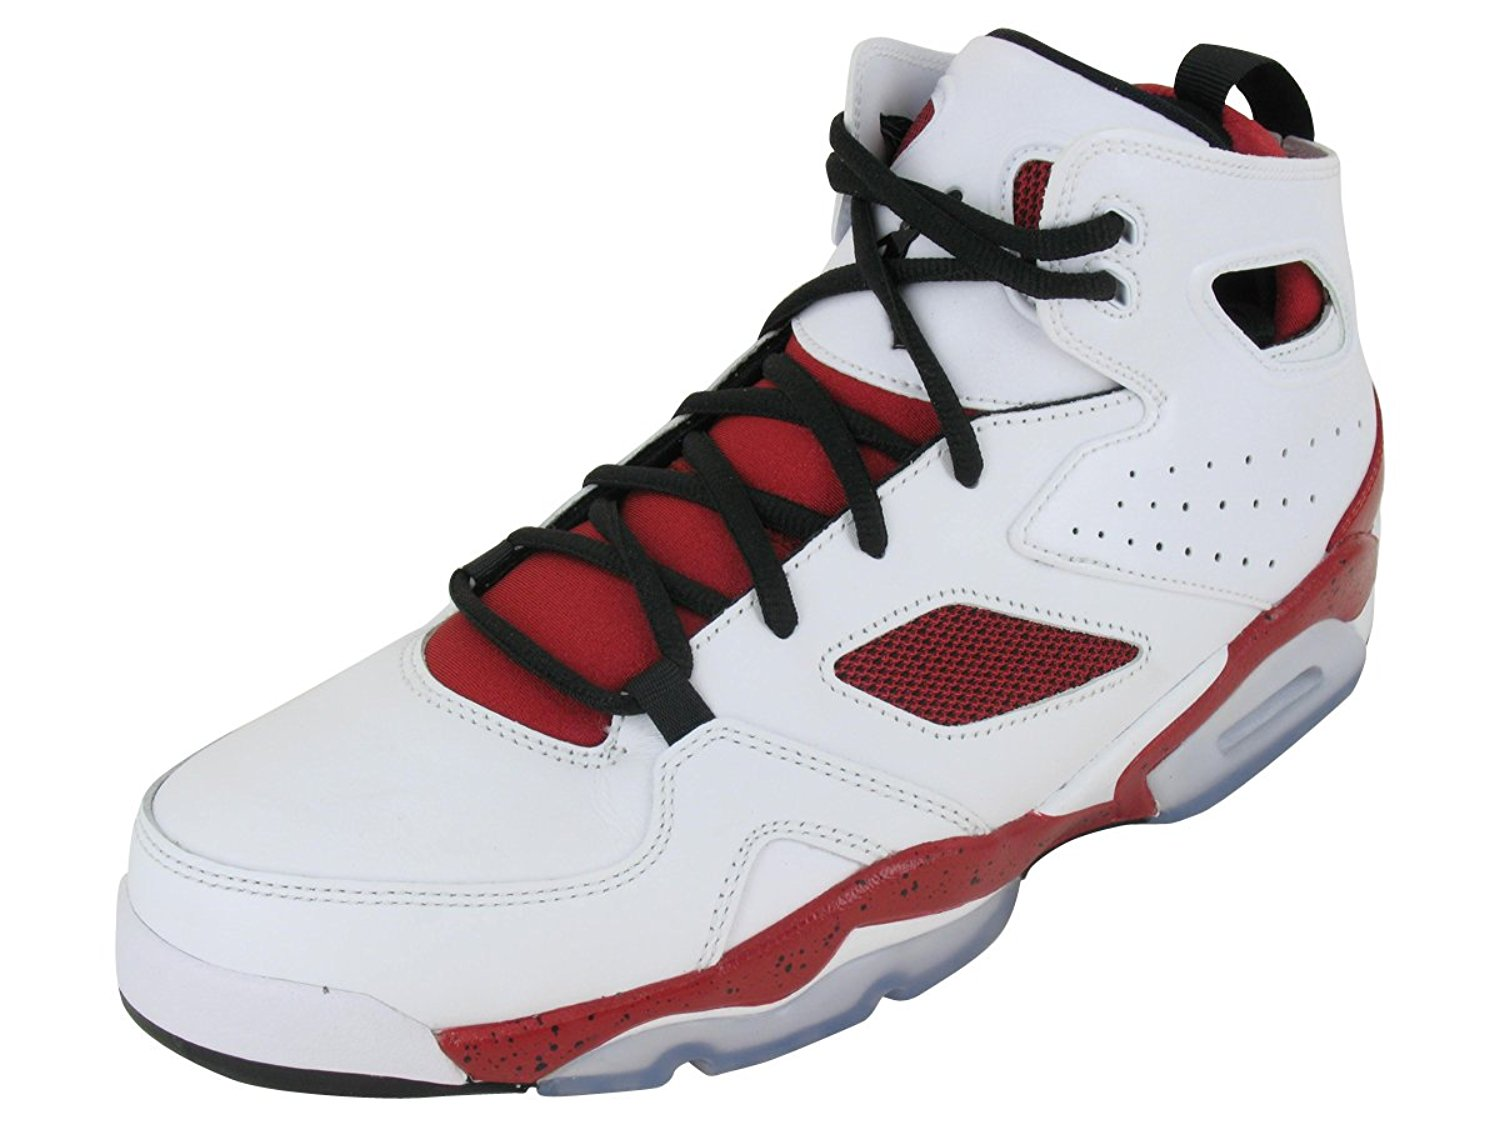 36970dd30e08 Buy Nike Air Jordan Flight Club 91 Mens Basketball Shoes in Cheap ...